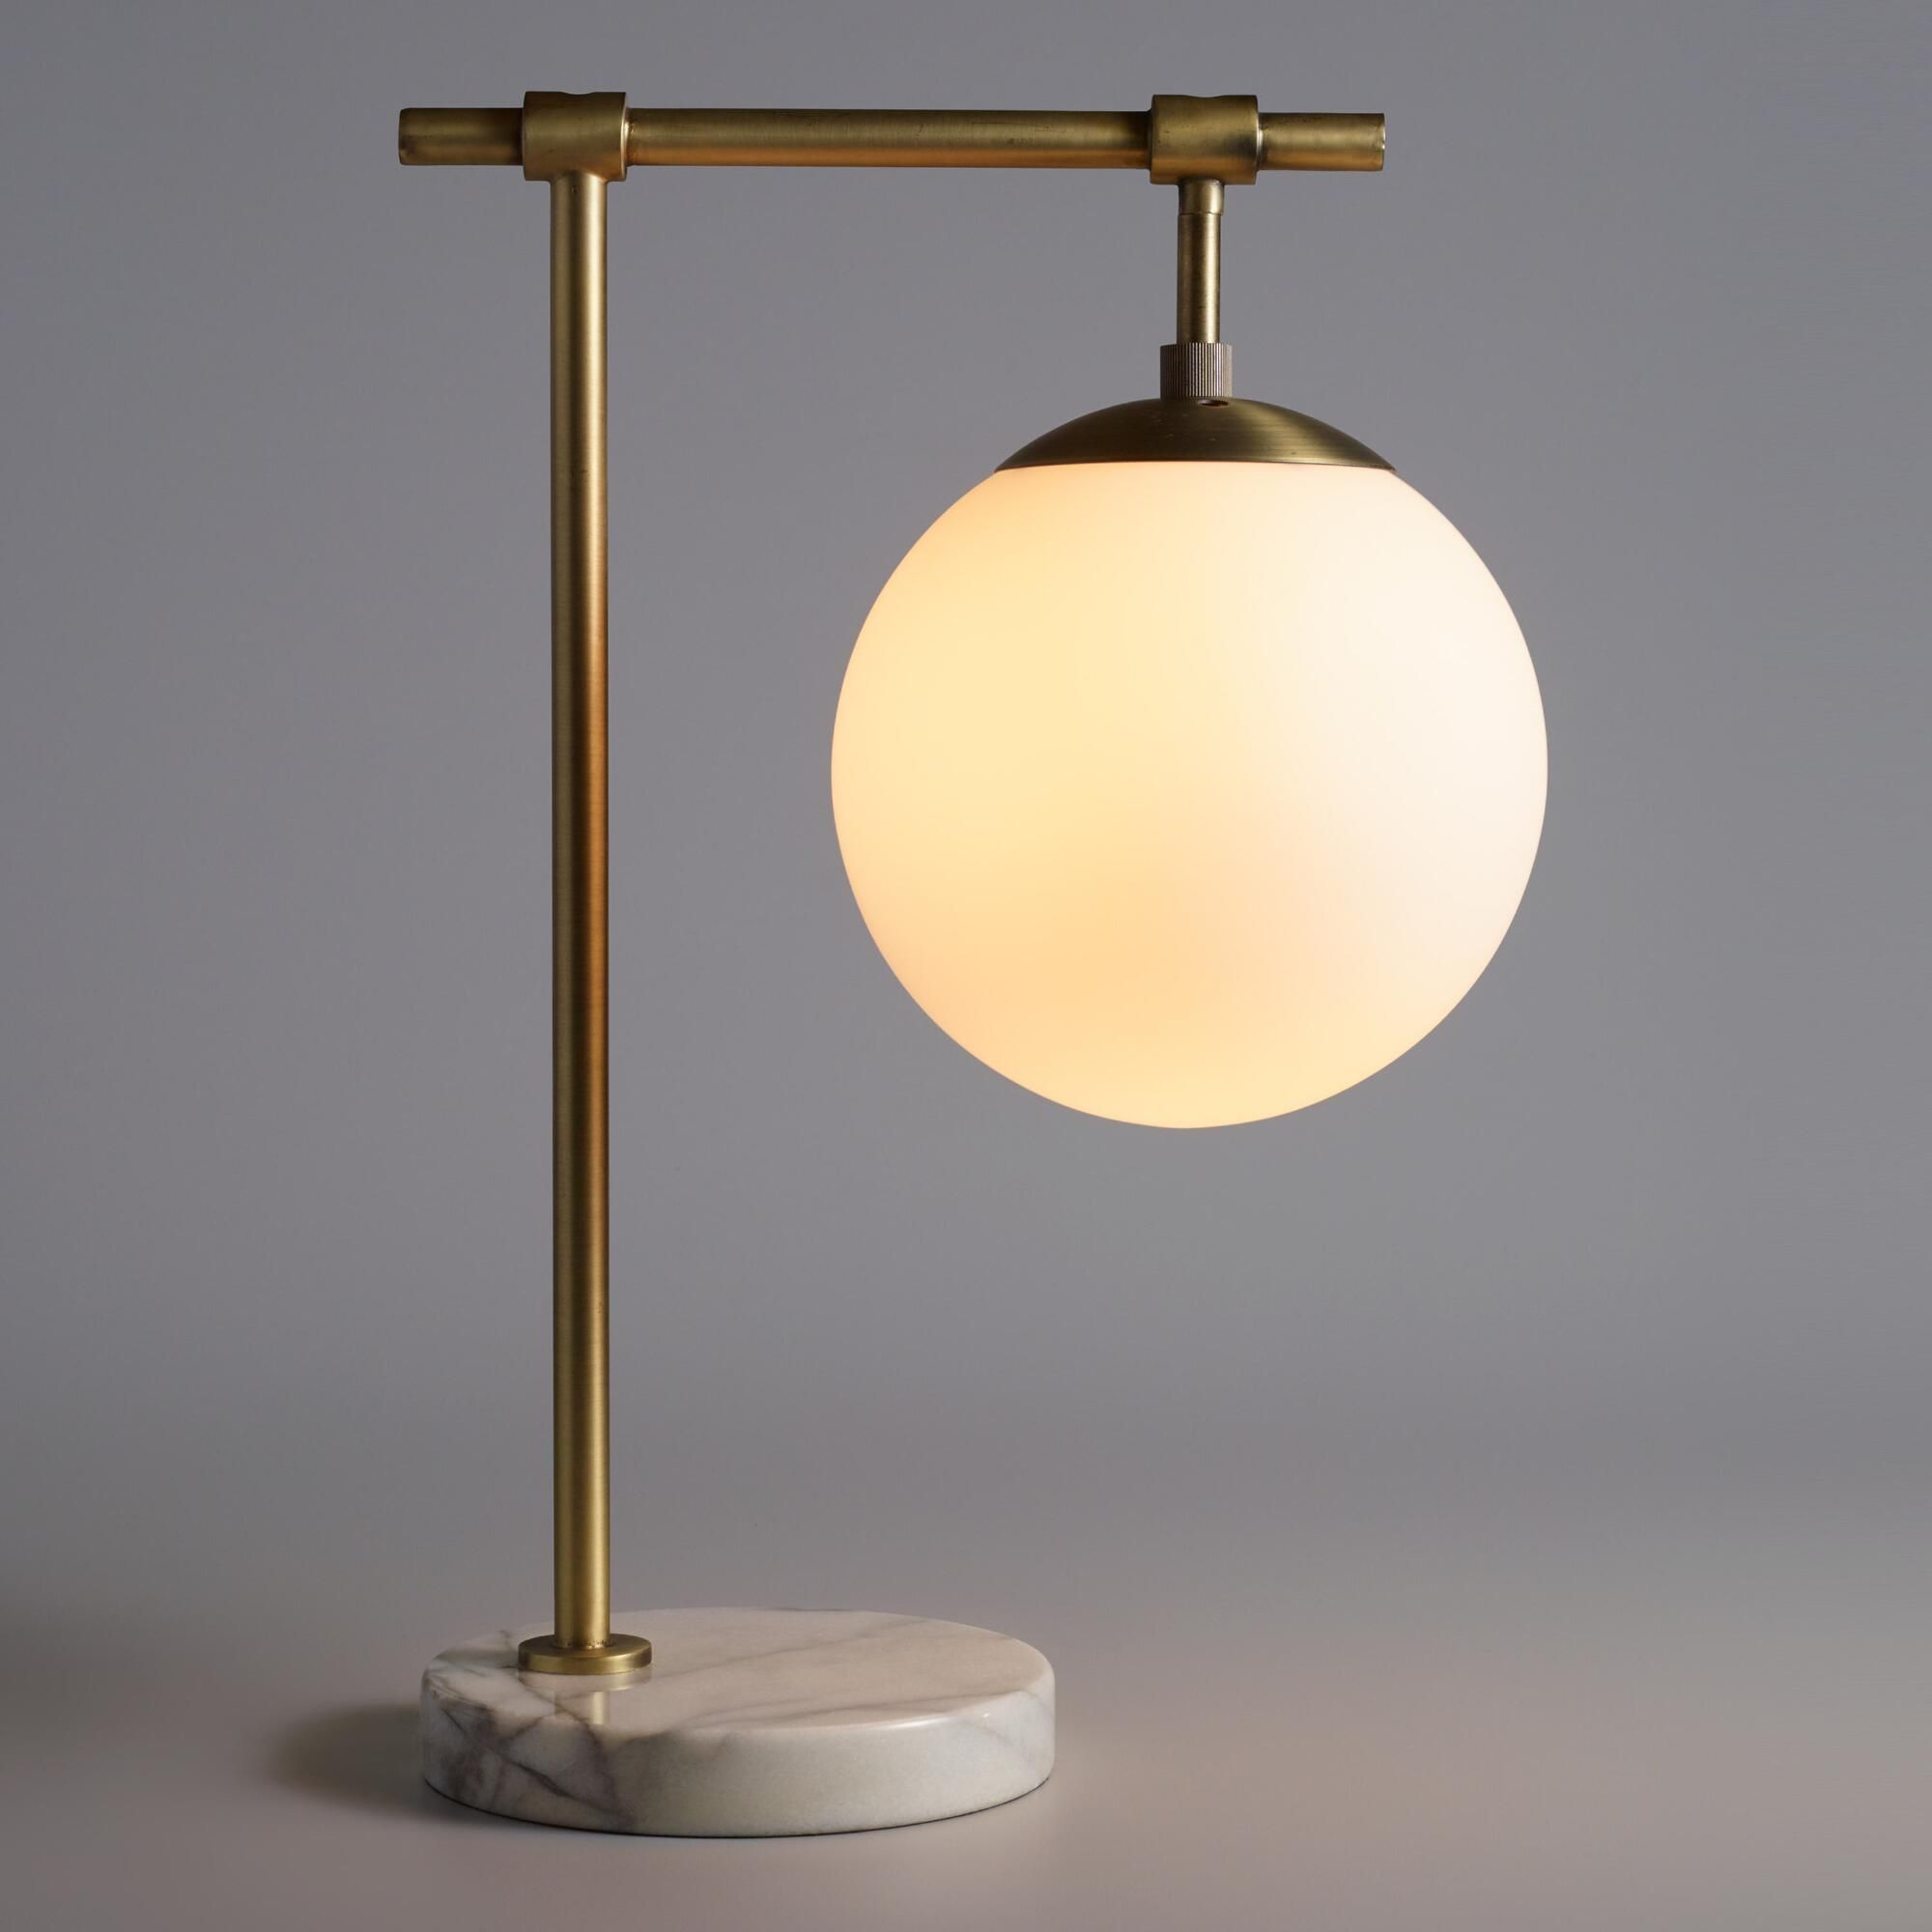 Frosted glass and marble globe table lamp task lamps frosted frosted glass and marble globe table lamp geotapseo Image collections